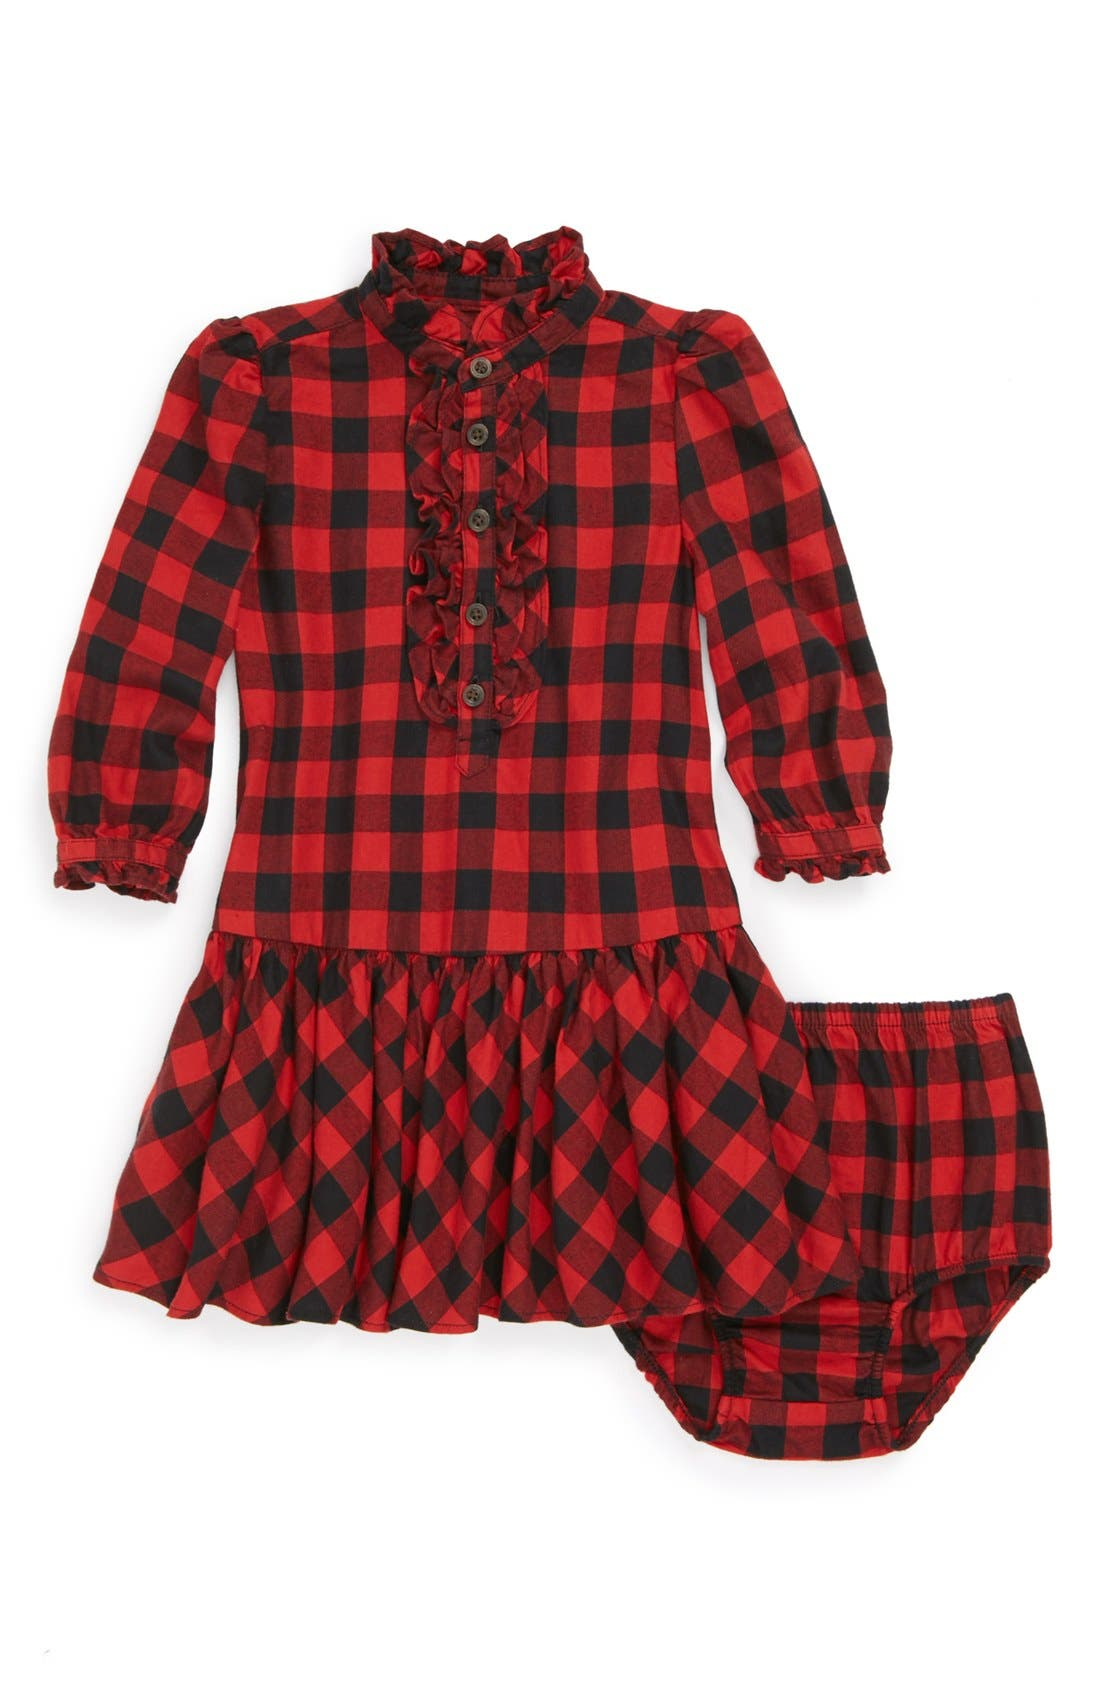 Alternate Image 1 Selected - Ralph Lauren Plaid Dress & Bloomers (Baby Girls)